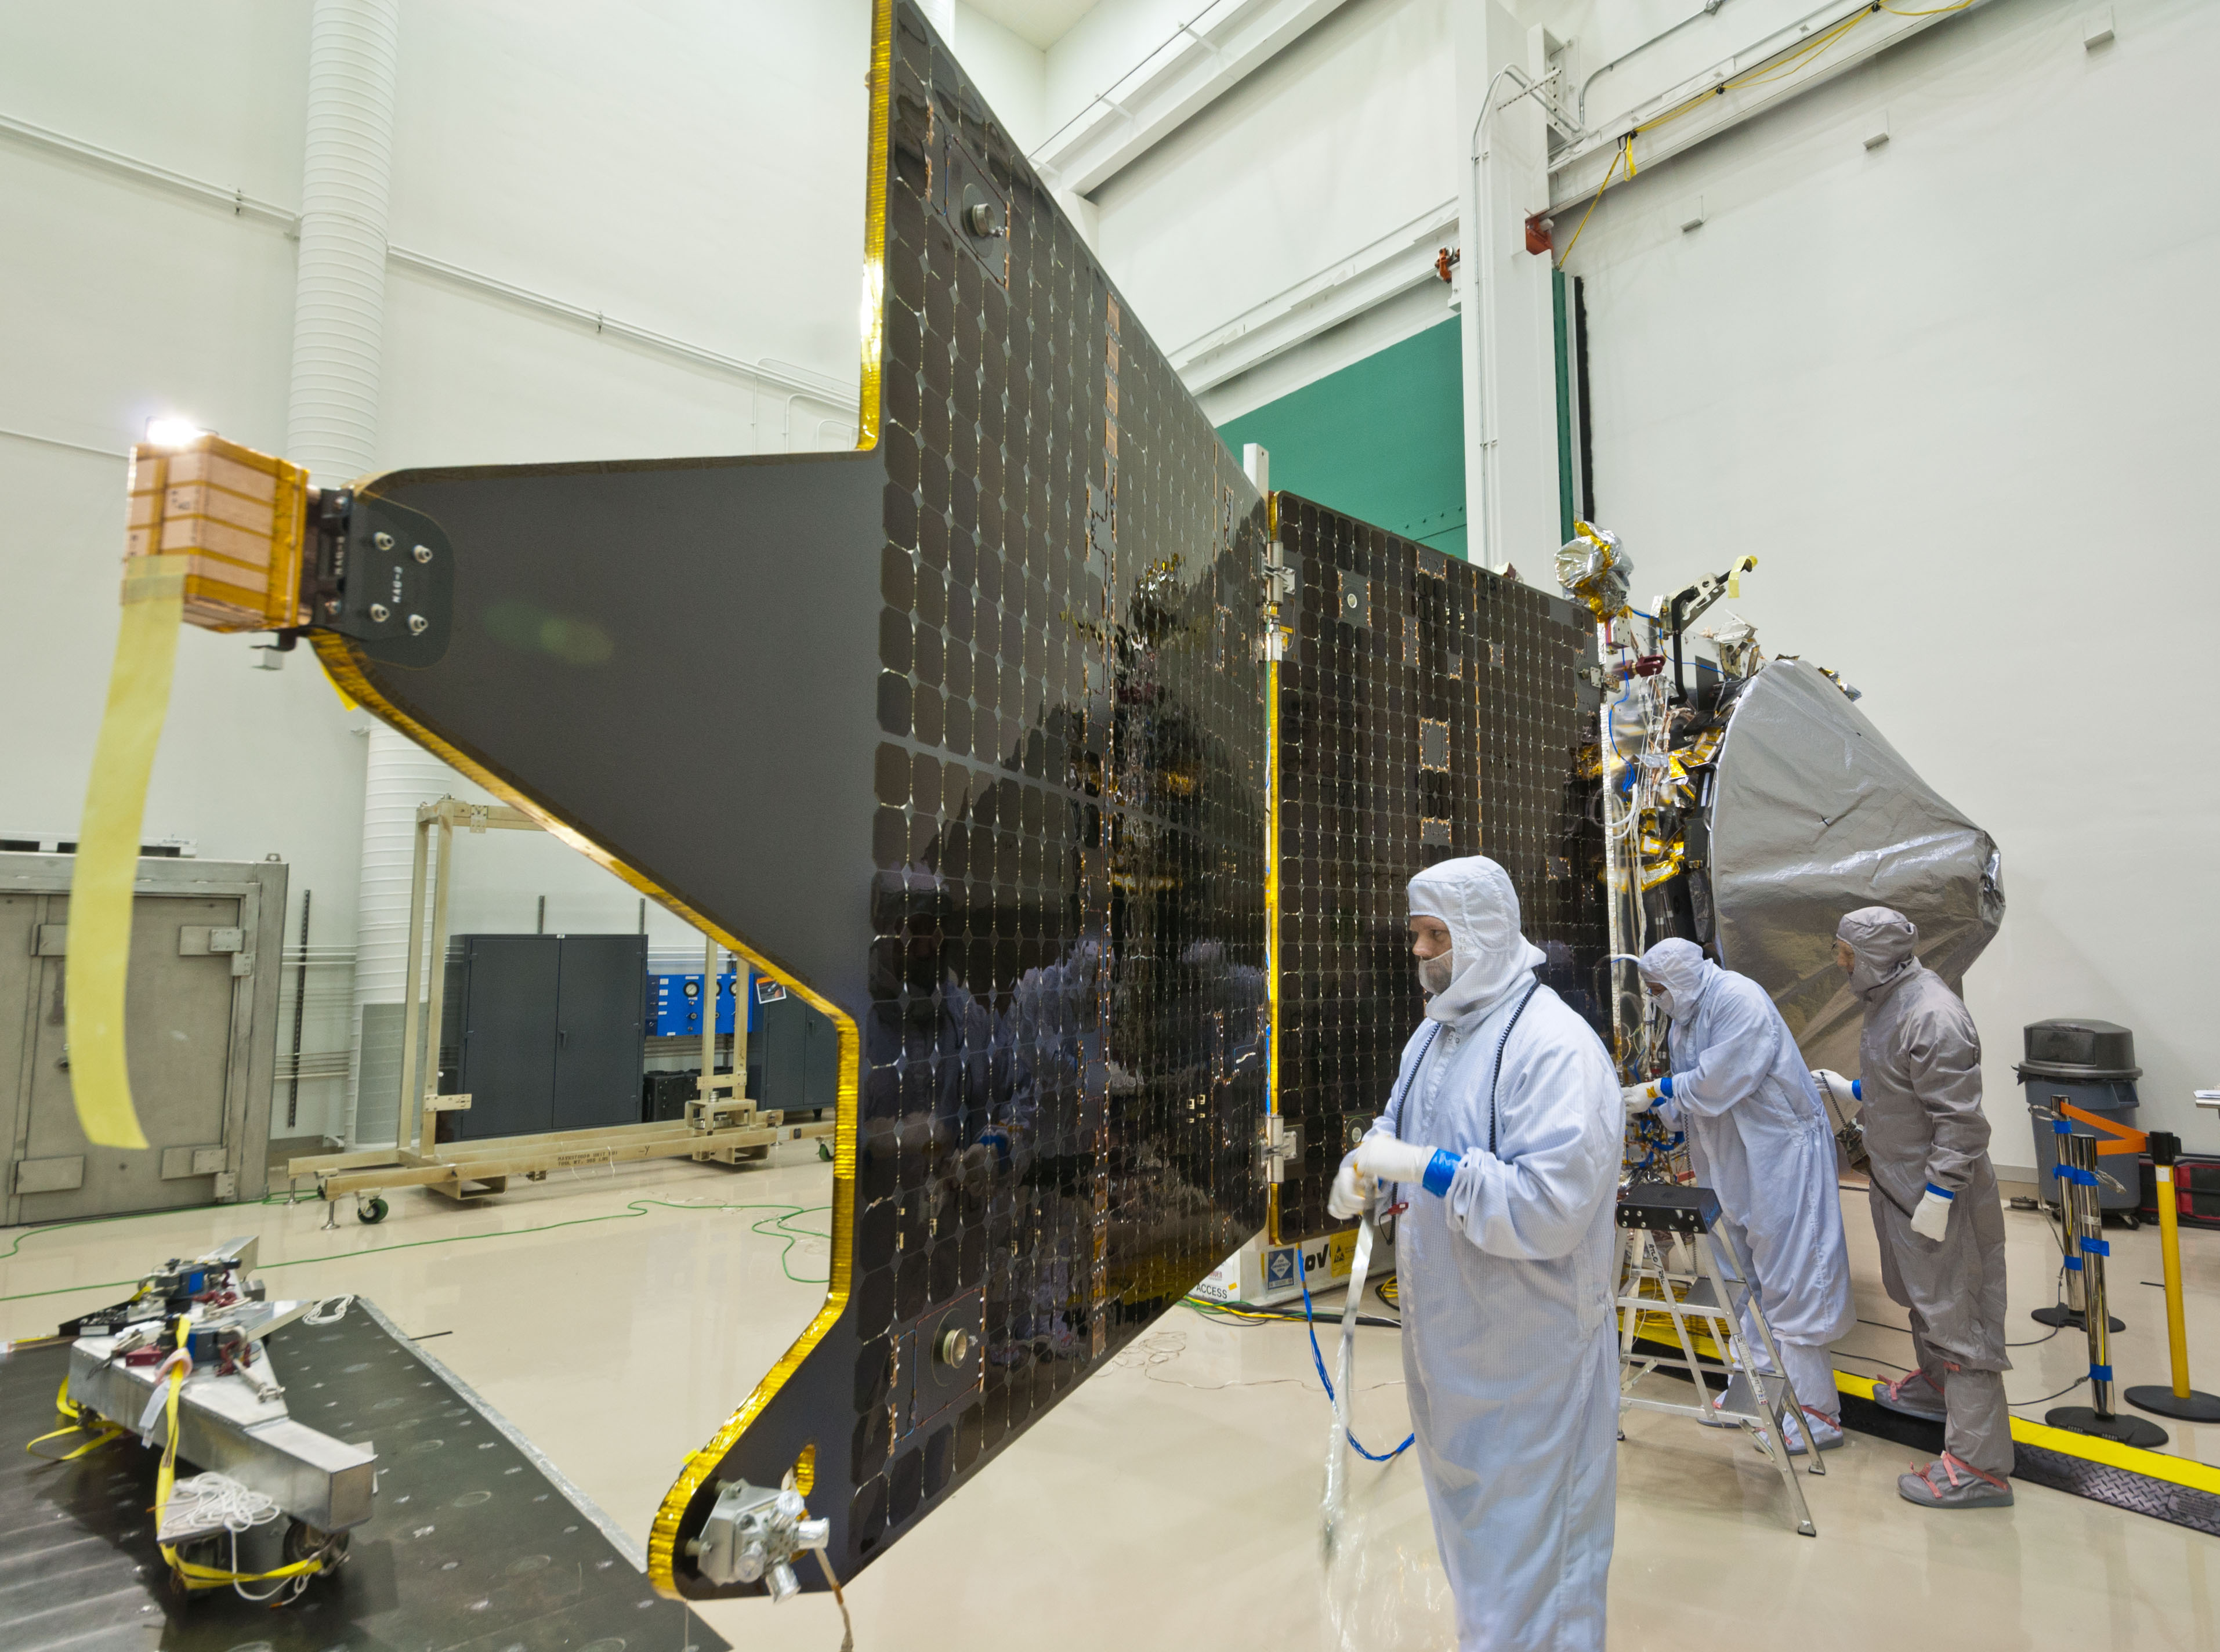 maven nasa - photo #24